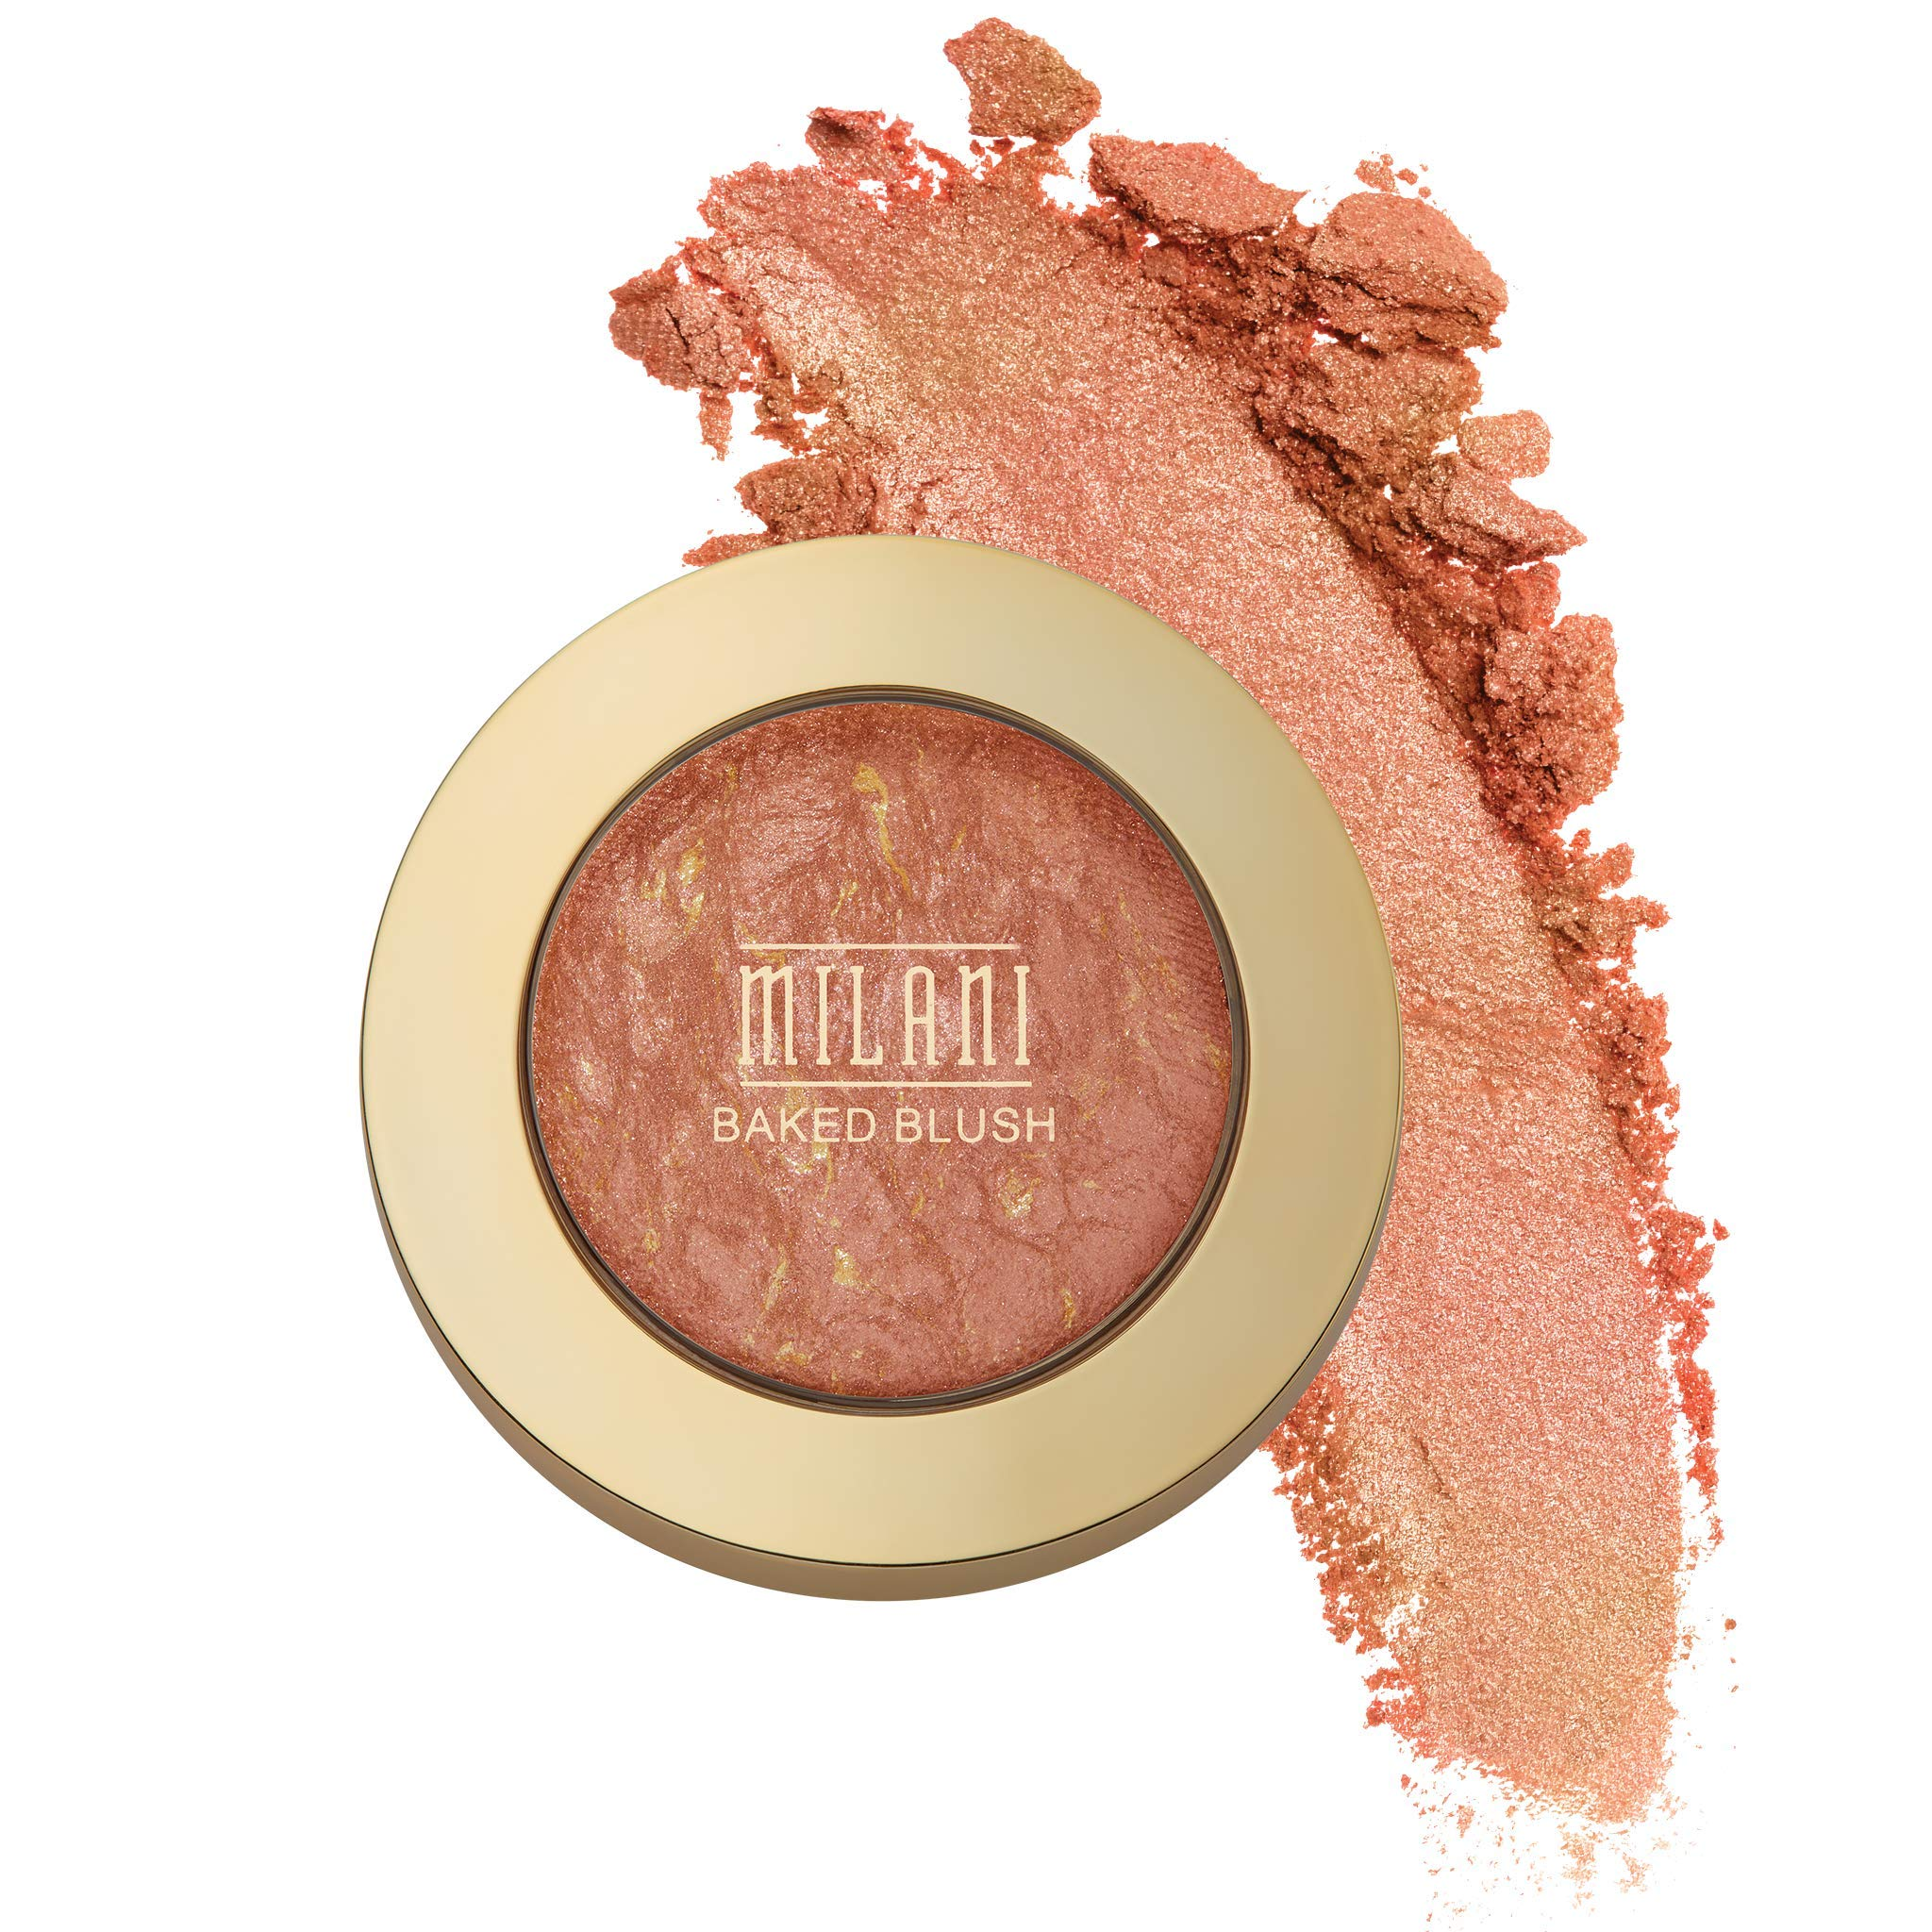 Milani Baked Blush - Rose D'Oro (0.12 Ounce) Cruelty-Free Powder Blush - Shape, Contour & Highlight Face for a Shimmery or Matte Finish